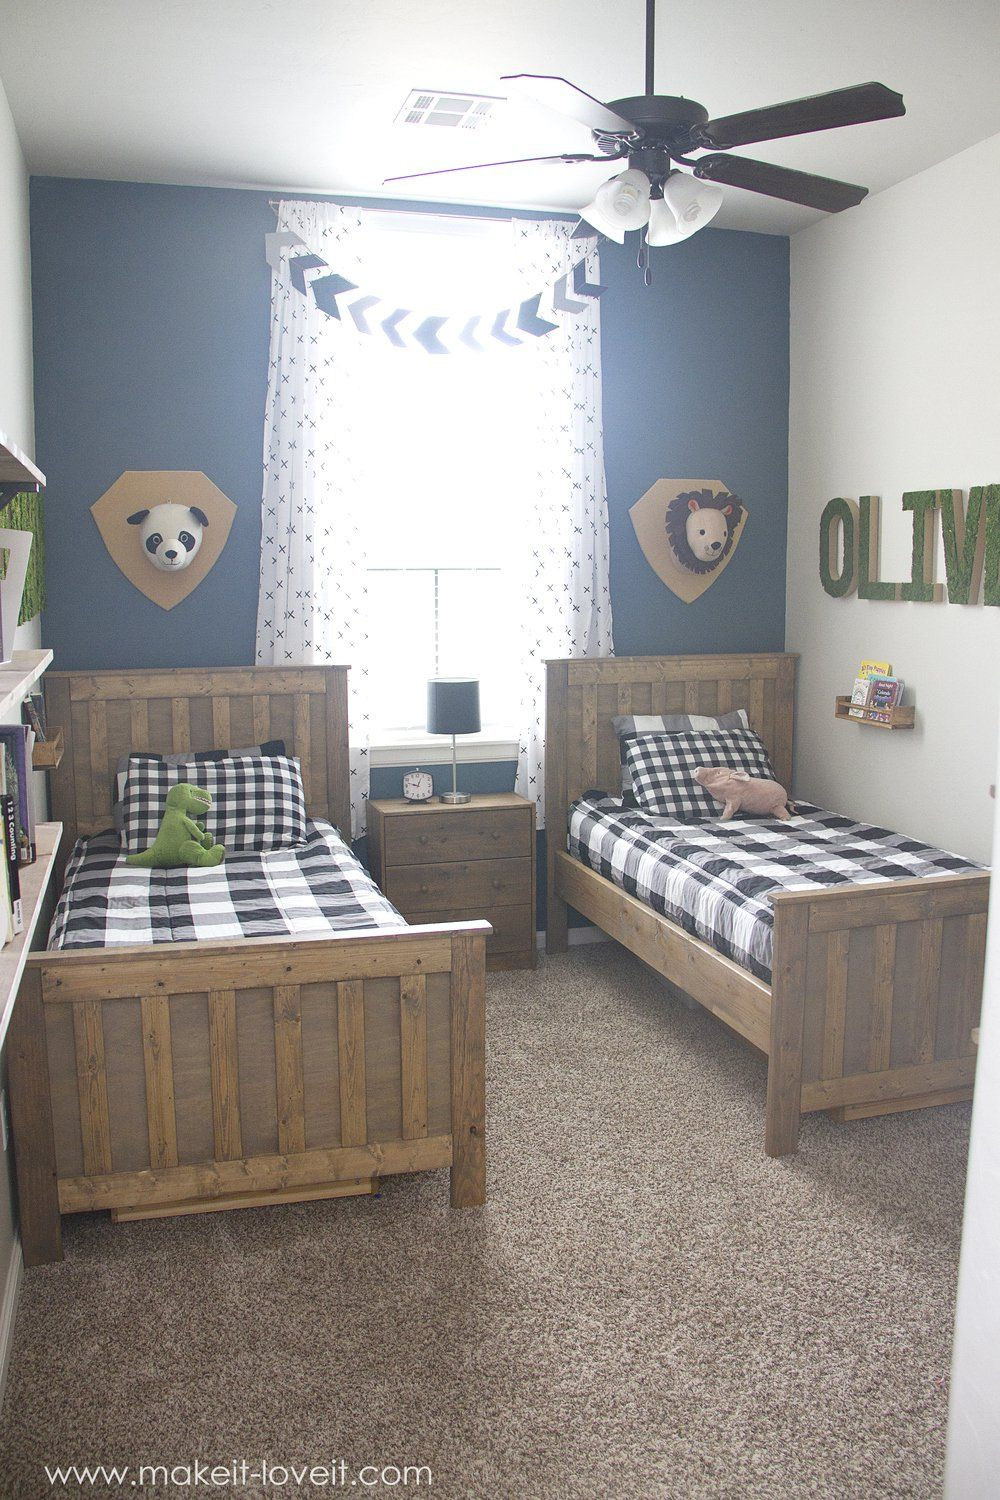 Ideas For A Shared Boys Bedroom Yay All Done Small Kids Room Boys Room Decor Big Boy Bedrooms